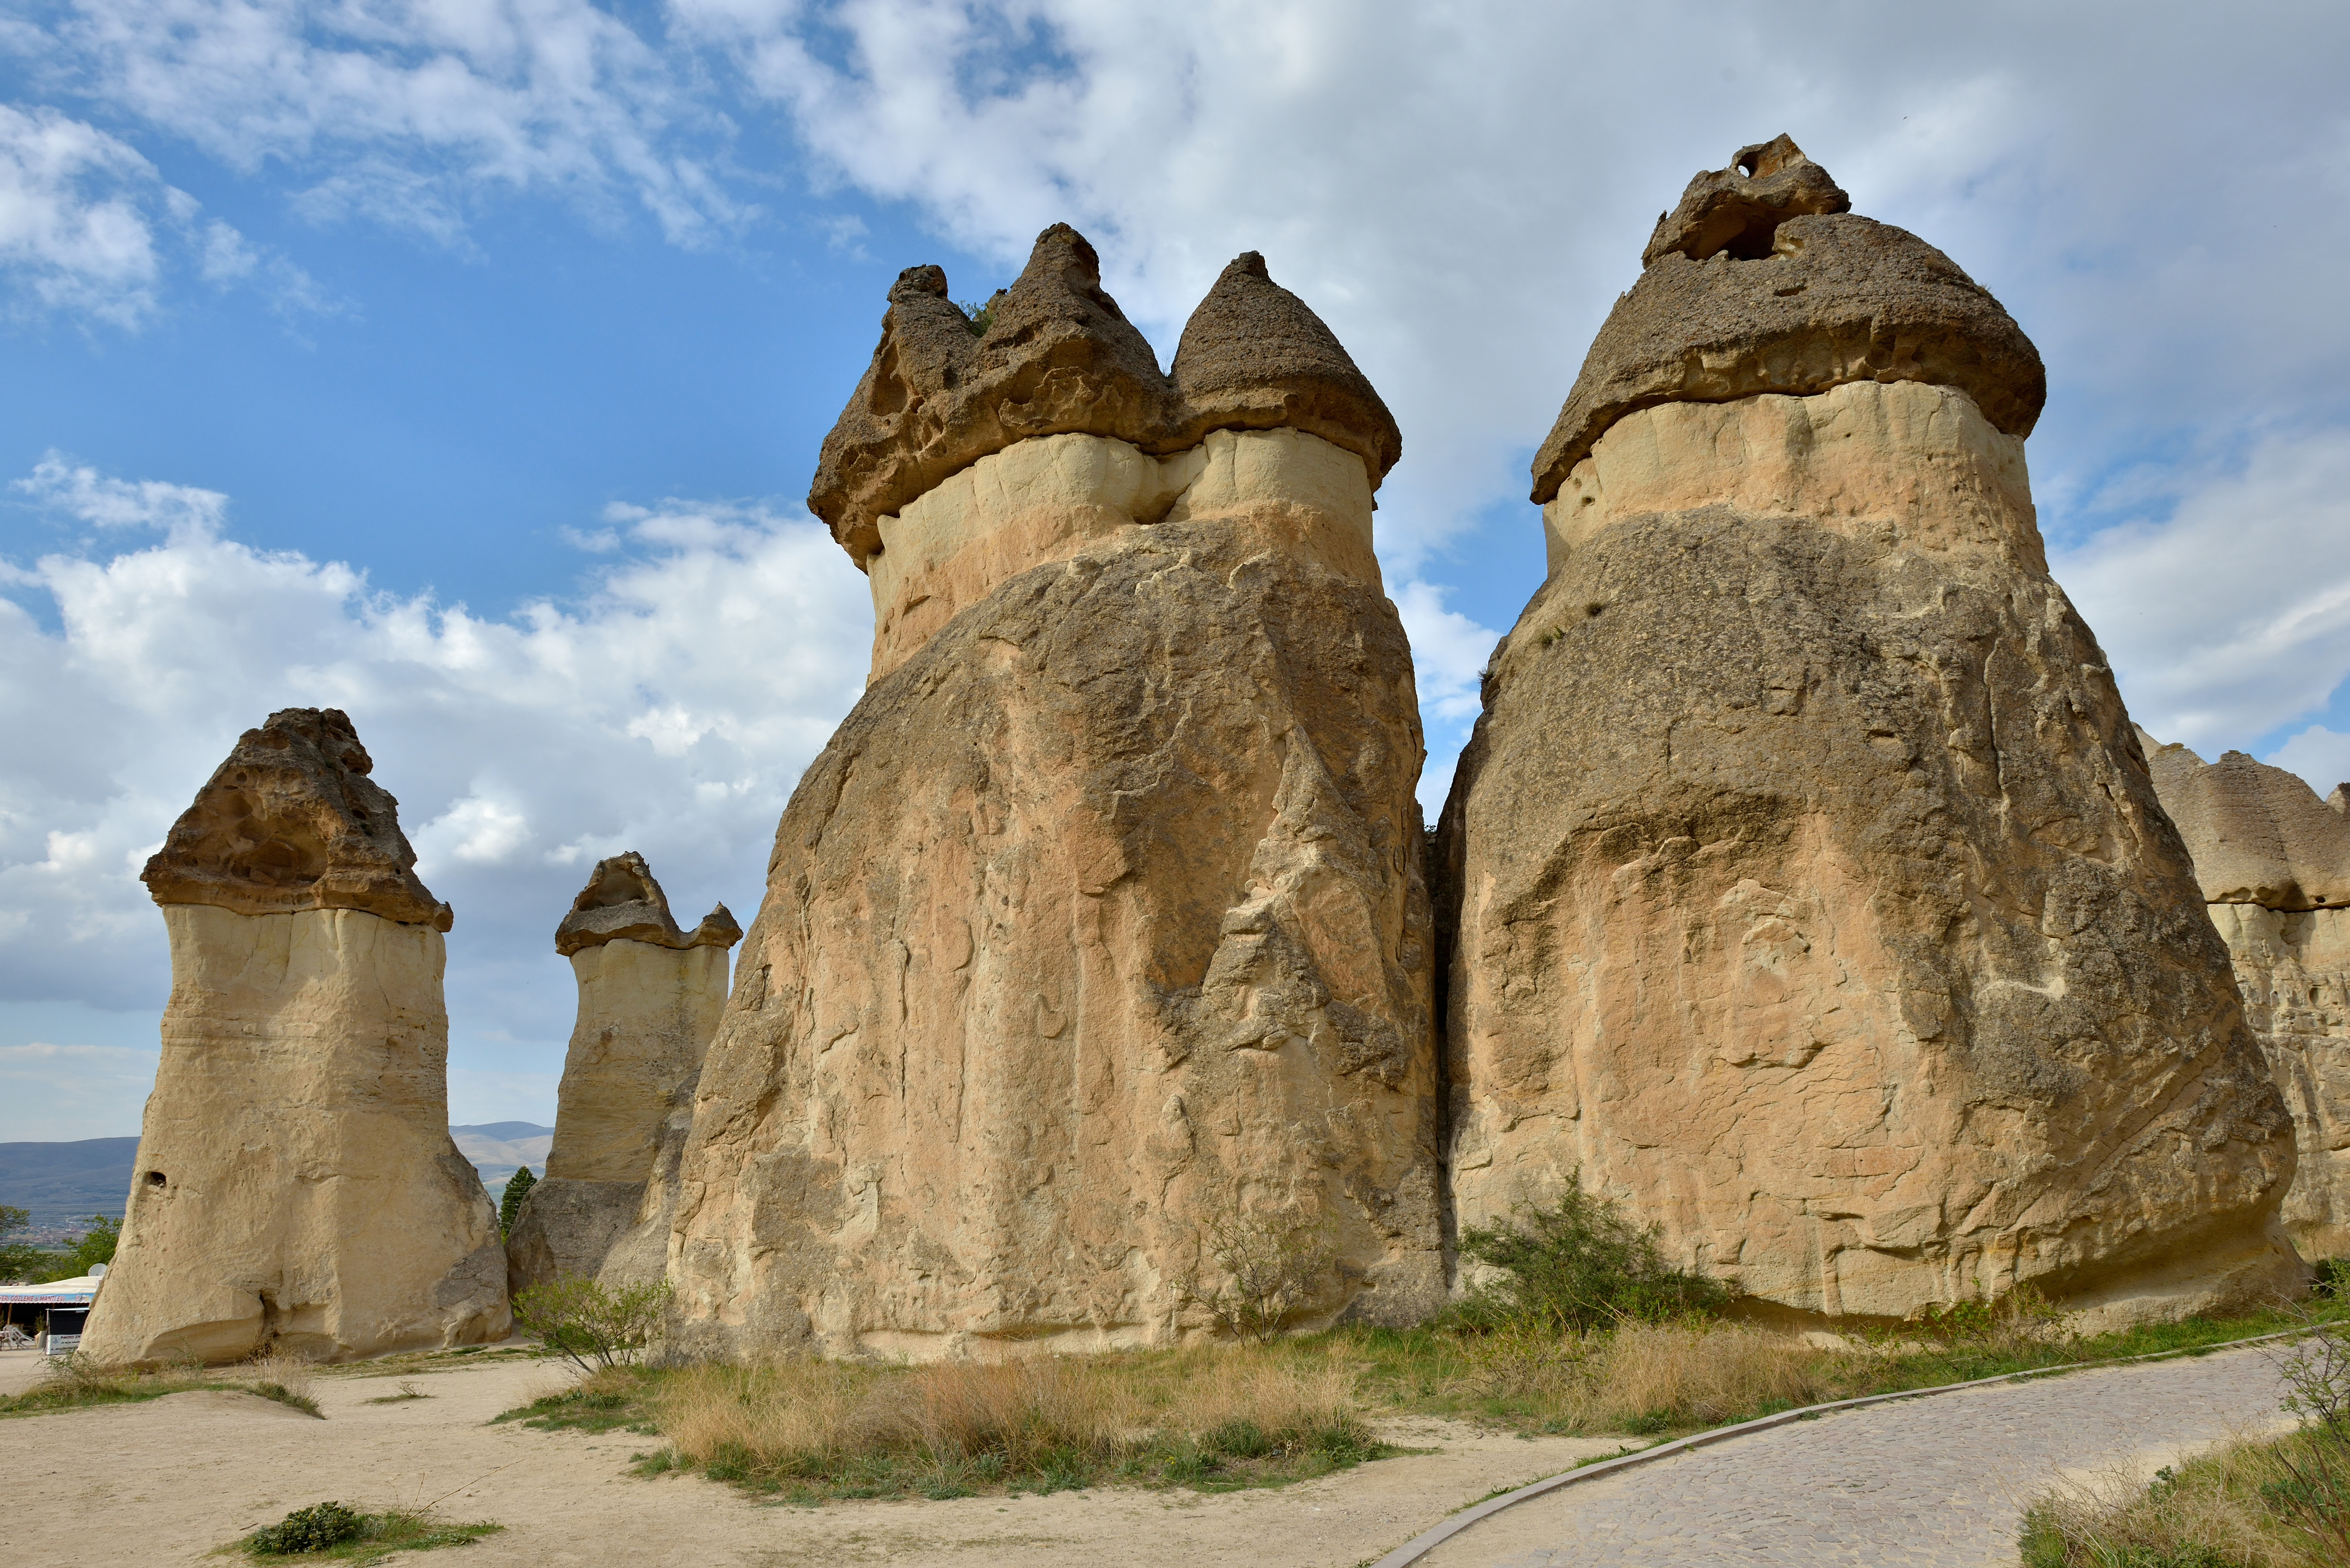 the lengthy work of erosion instigated, the softer tuff wore down, giving way to pillars, stand as tall as 130 feet